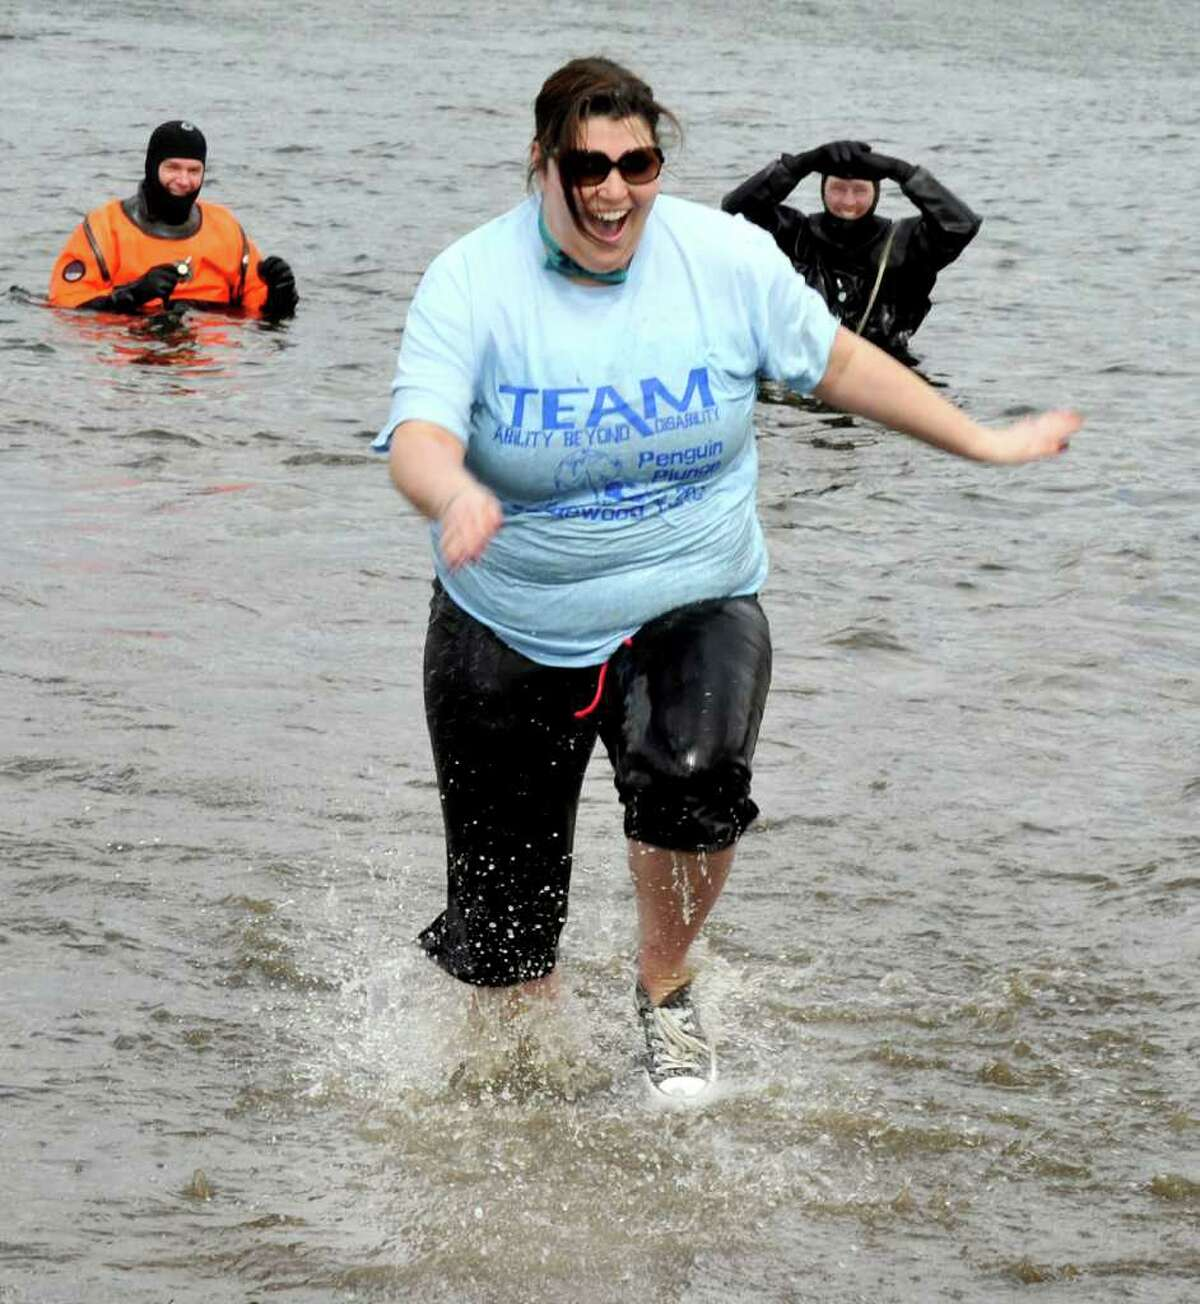 Michelle Weinstein, 32, of Newtown, comes out of the water during the 2nd Annual Penguin Plunge to benefit the Special Olympics at Candlewood Town Park in Danbury, Sunday, March 13, 2011.